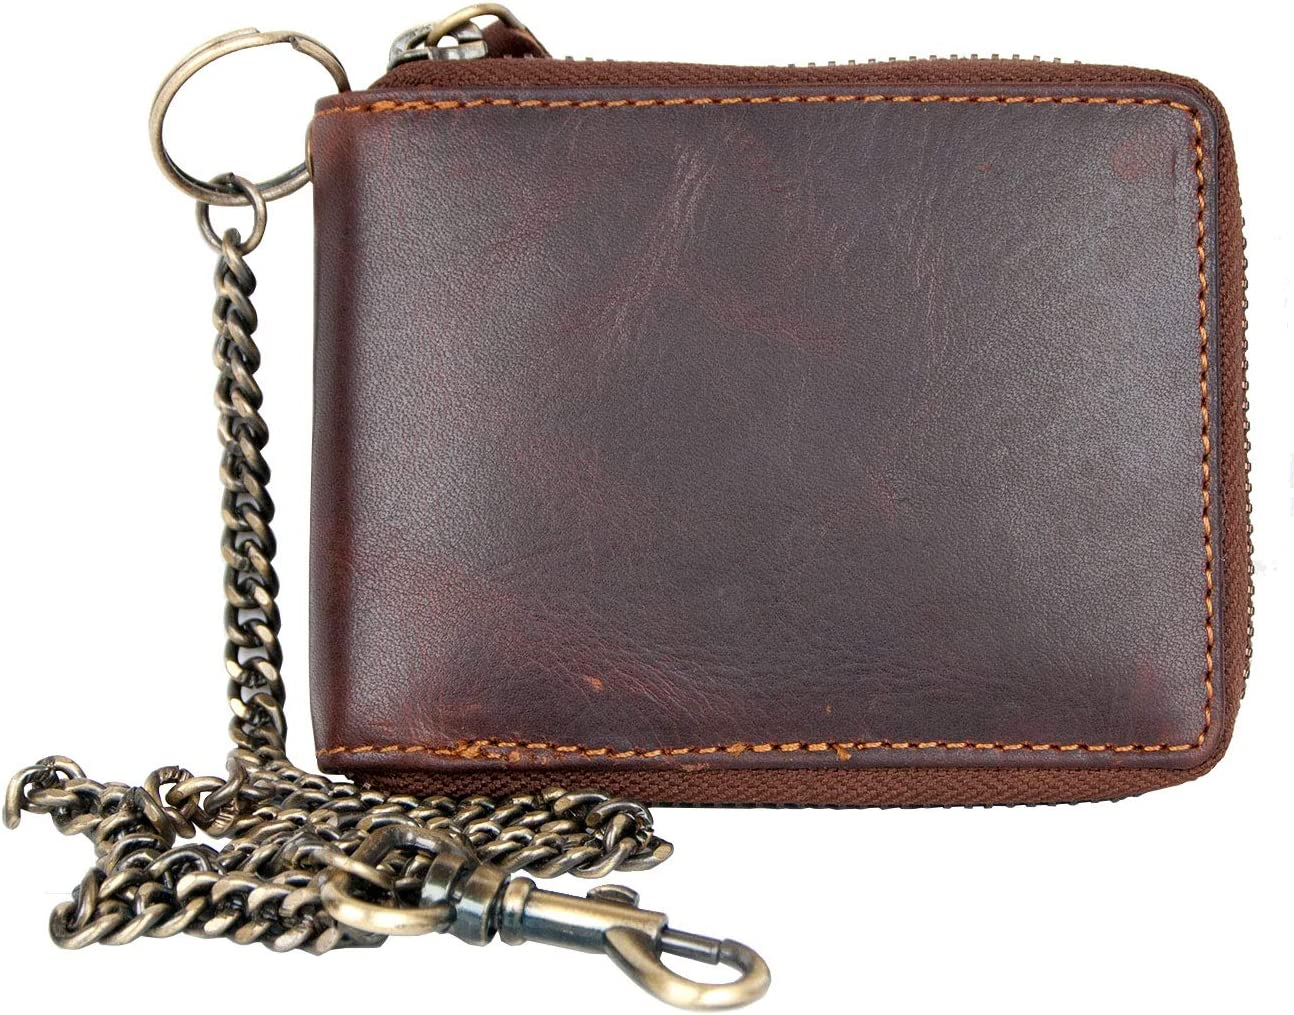 Pocket Size Leather Wallet with Metal Zipper and Chain without Any Logos or Markings